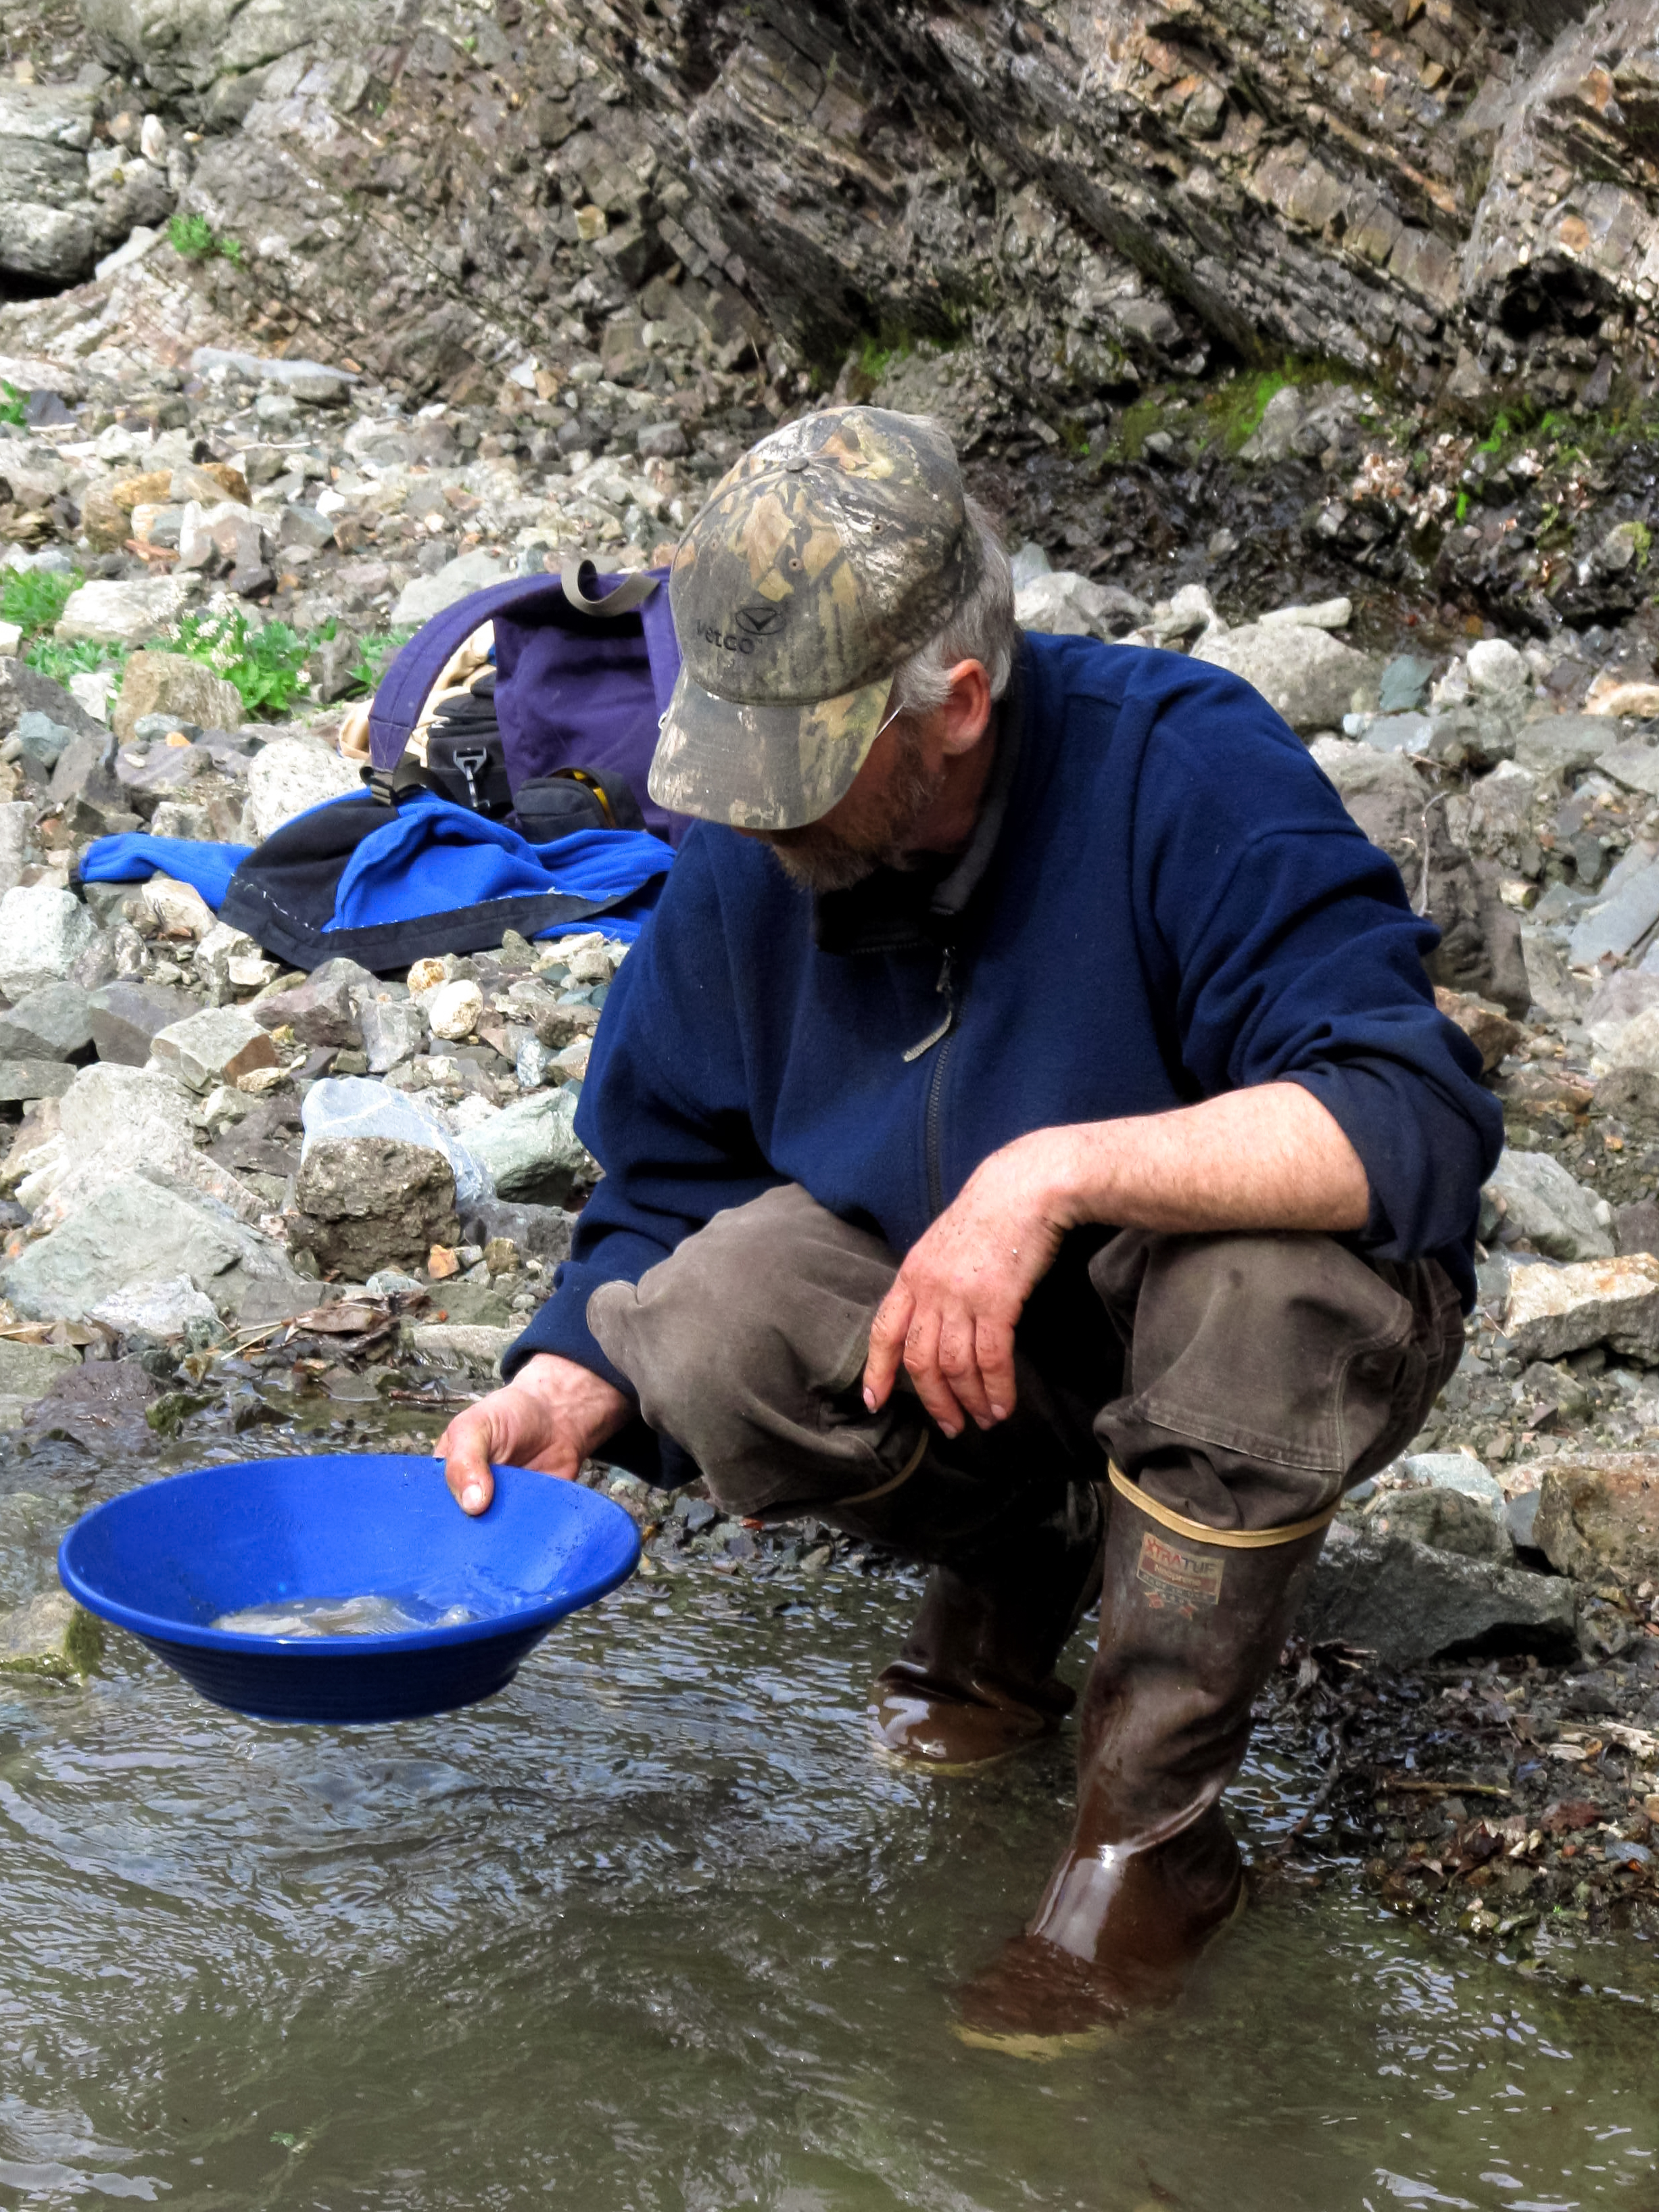 Panning for gold in the creek.